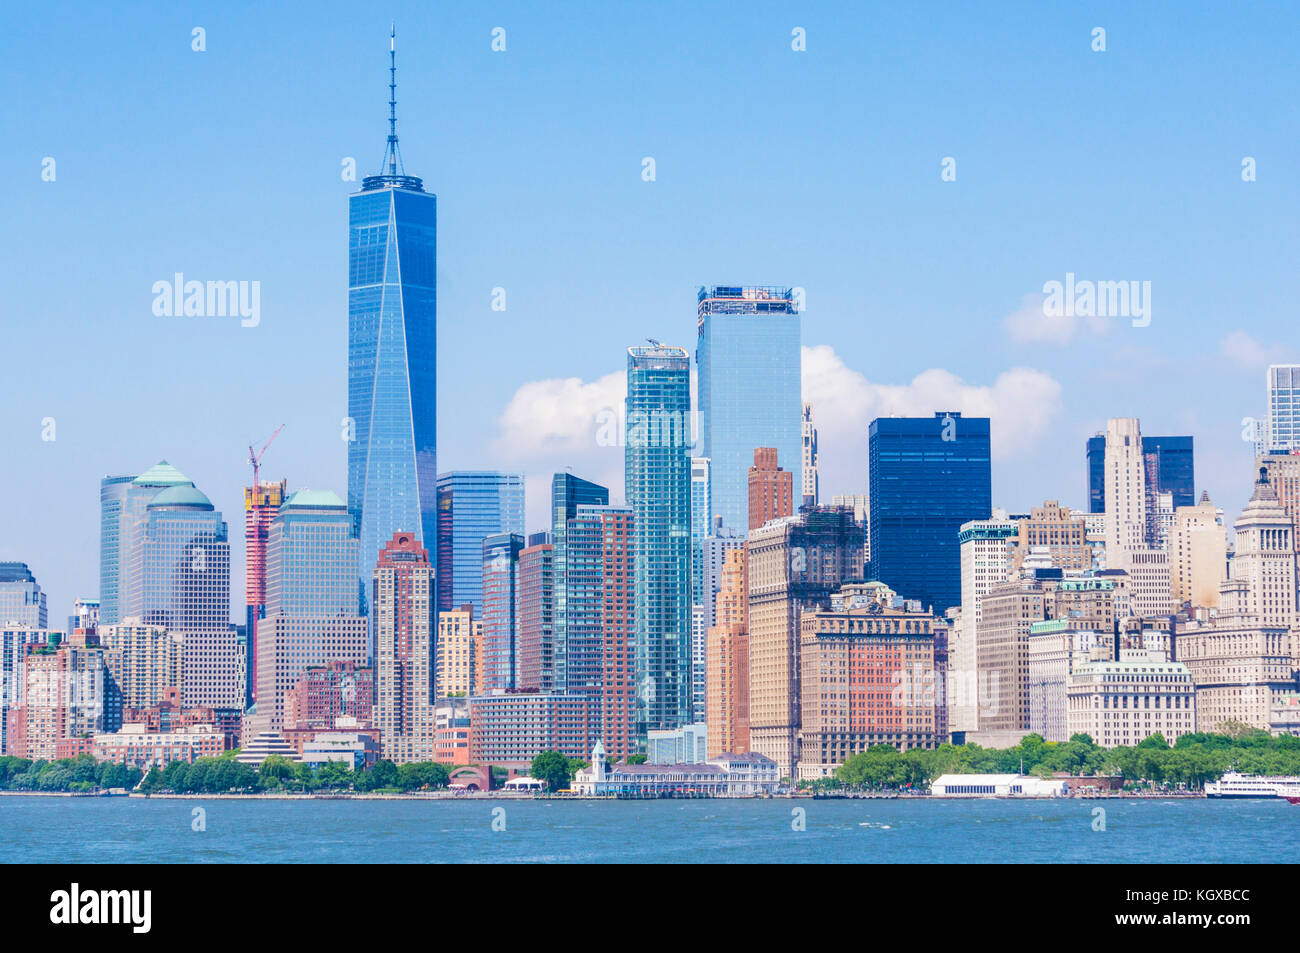 Skyline New York City usa New York Skyline Skyline von Manhattan mit Wolkenkratzern einschliesslich der Freedom Stockbild